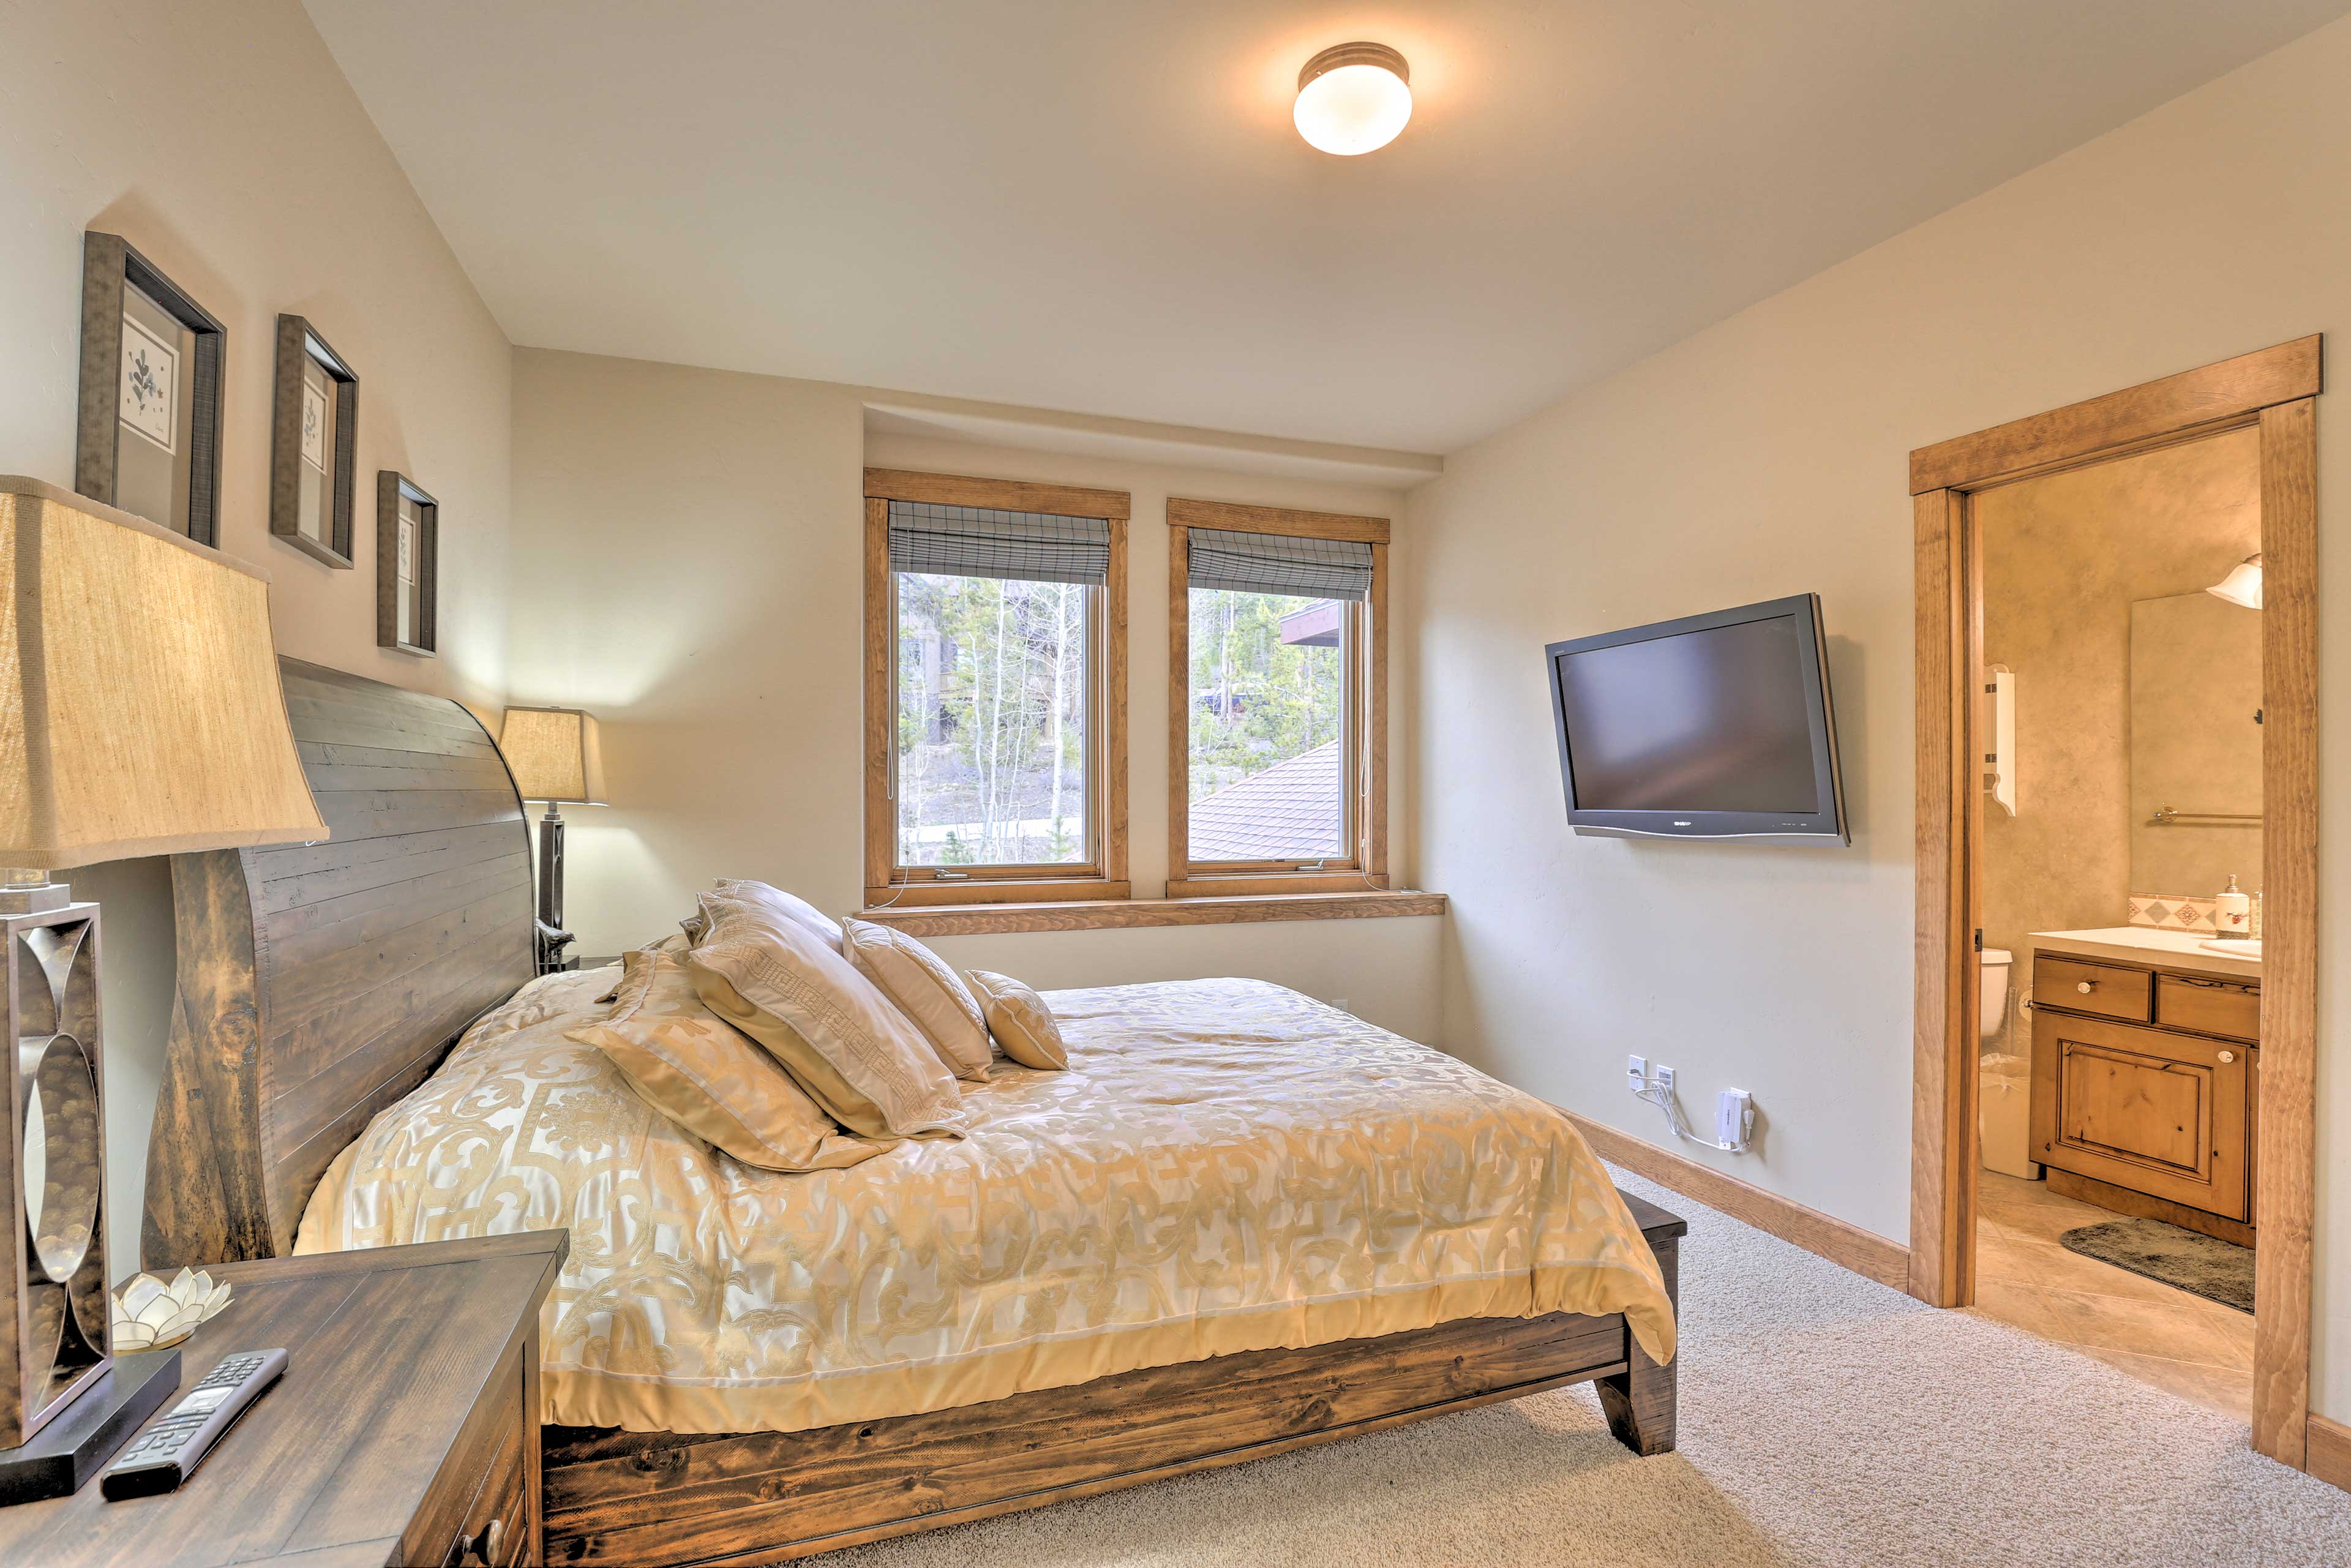 Enjoy a personal TV & en-suite bath in this room as well.